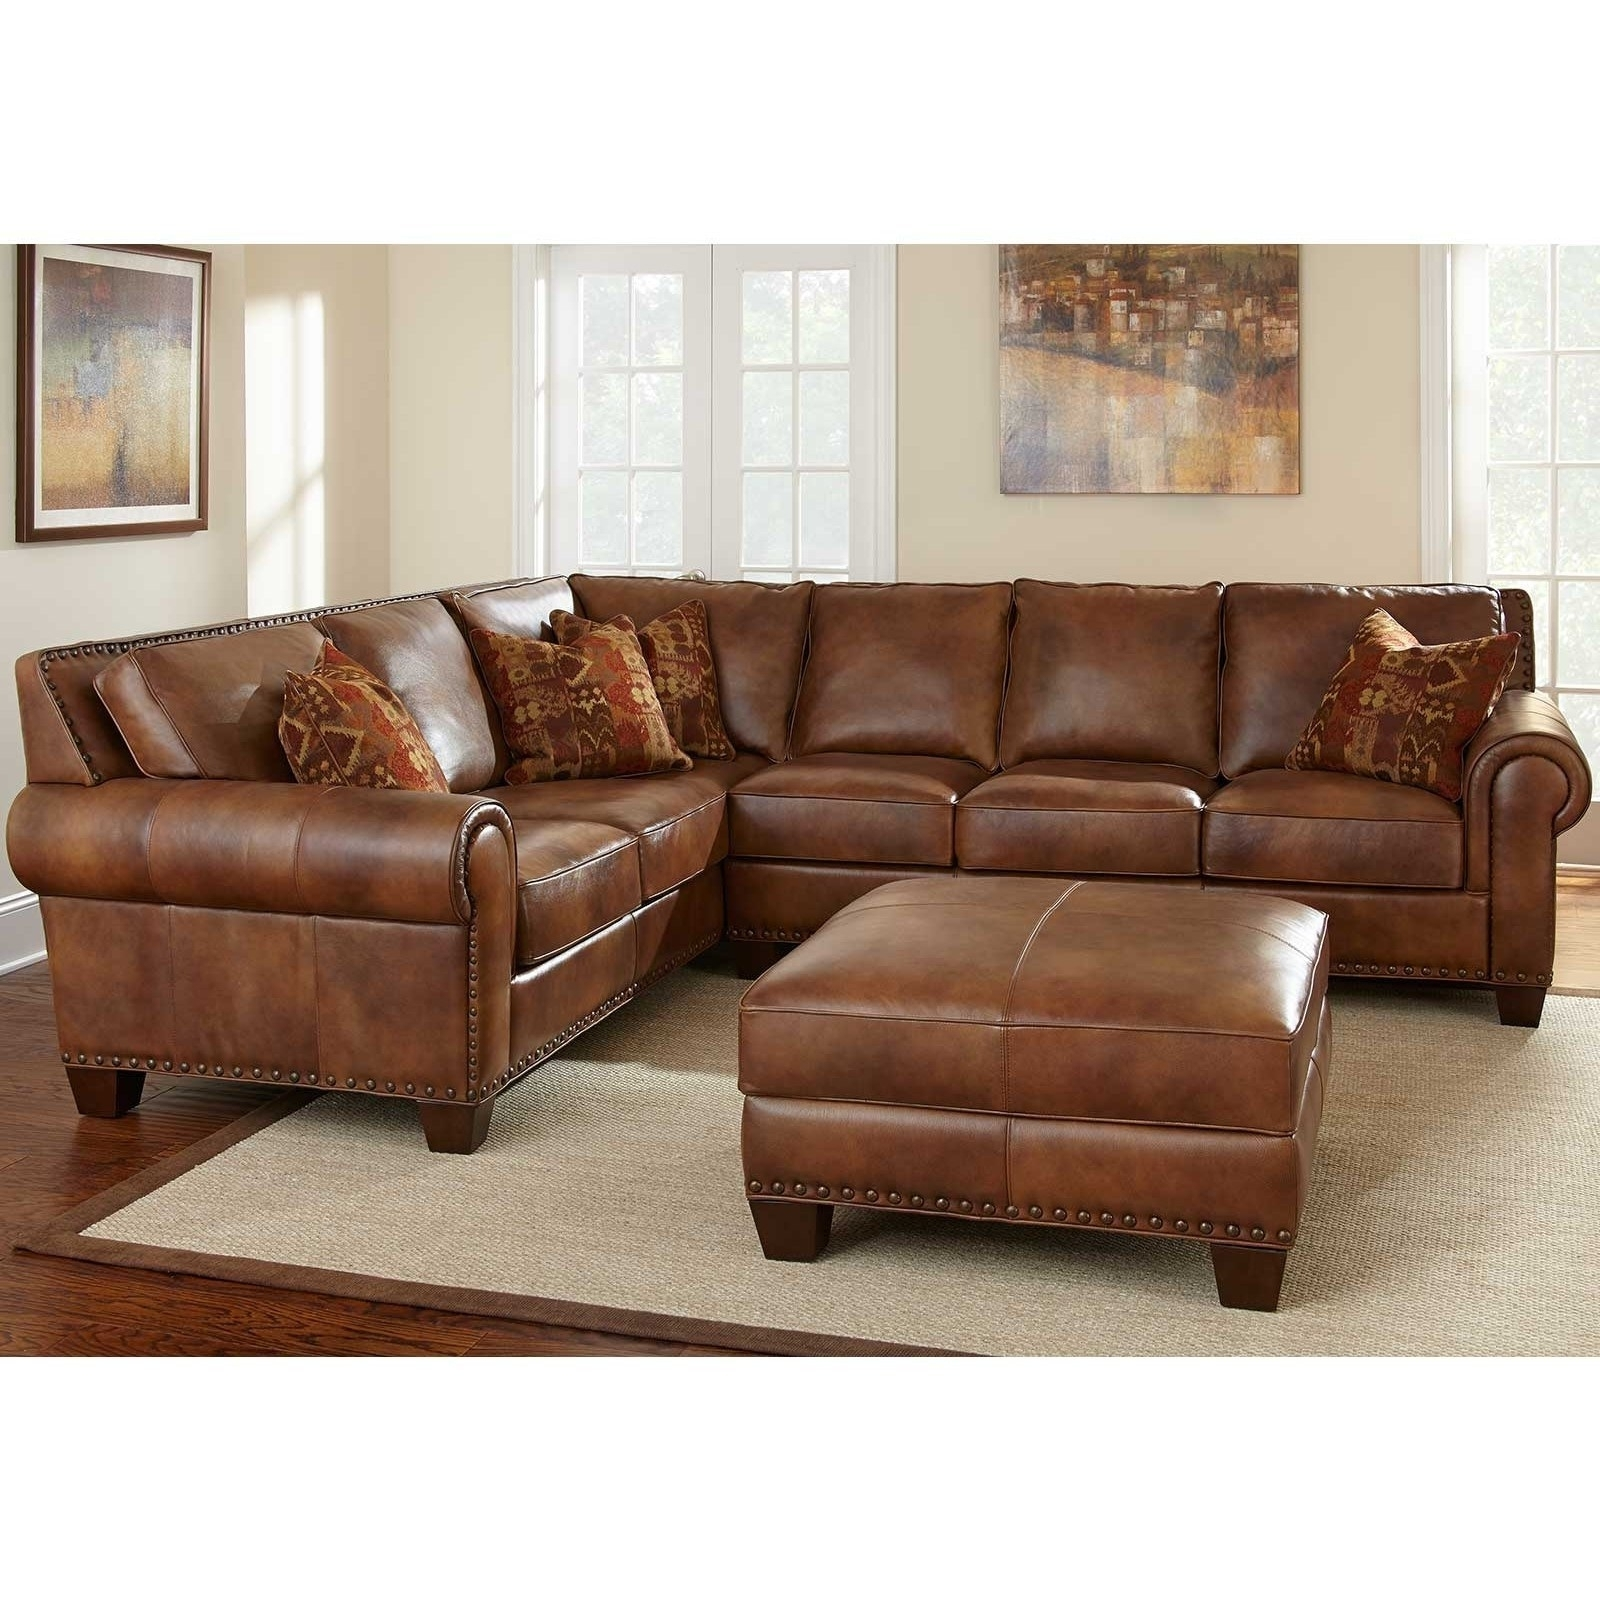 Most Recent Sectional Sofa Sales – Hotelsbacau In North Carolina Sectional Sofas (View 6 of 15)